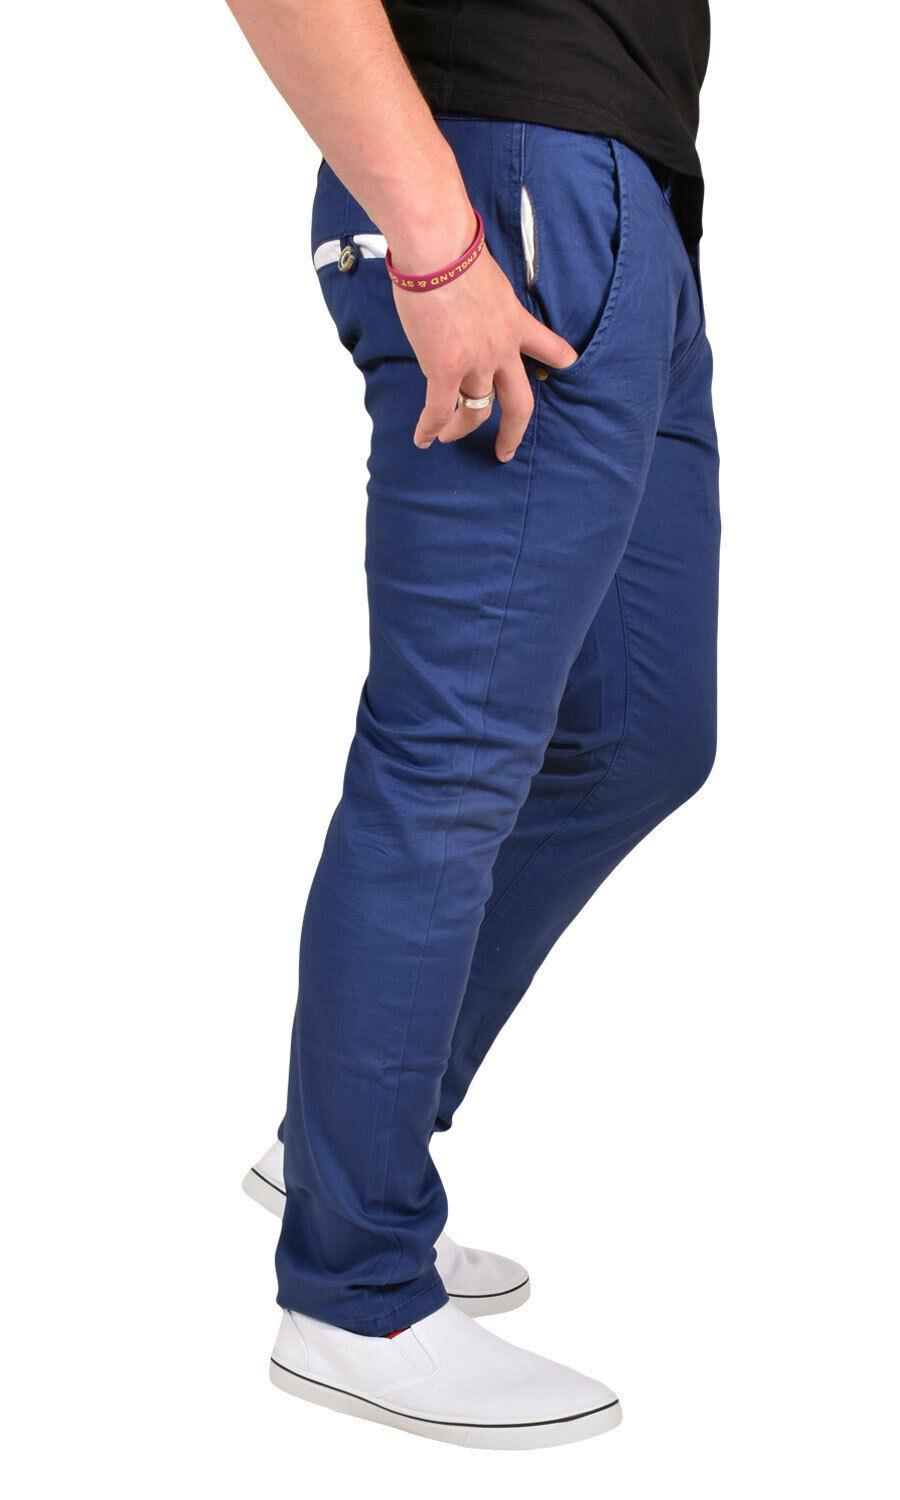 New-Mens-Designer-Jacksouth-Chino-Regular-Fit-Stretch-Cotton-Rich-Twill-Trousers thumbnail 6